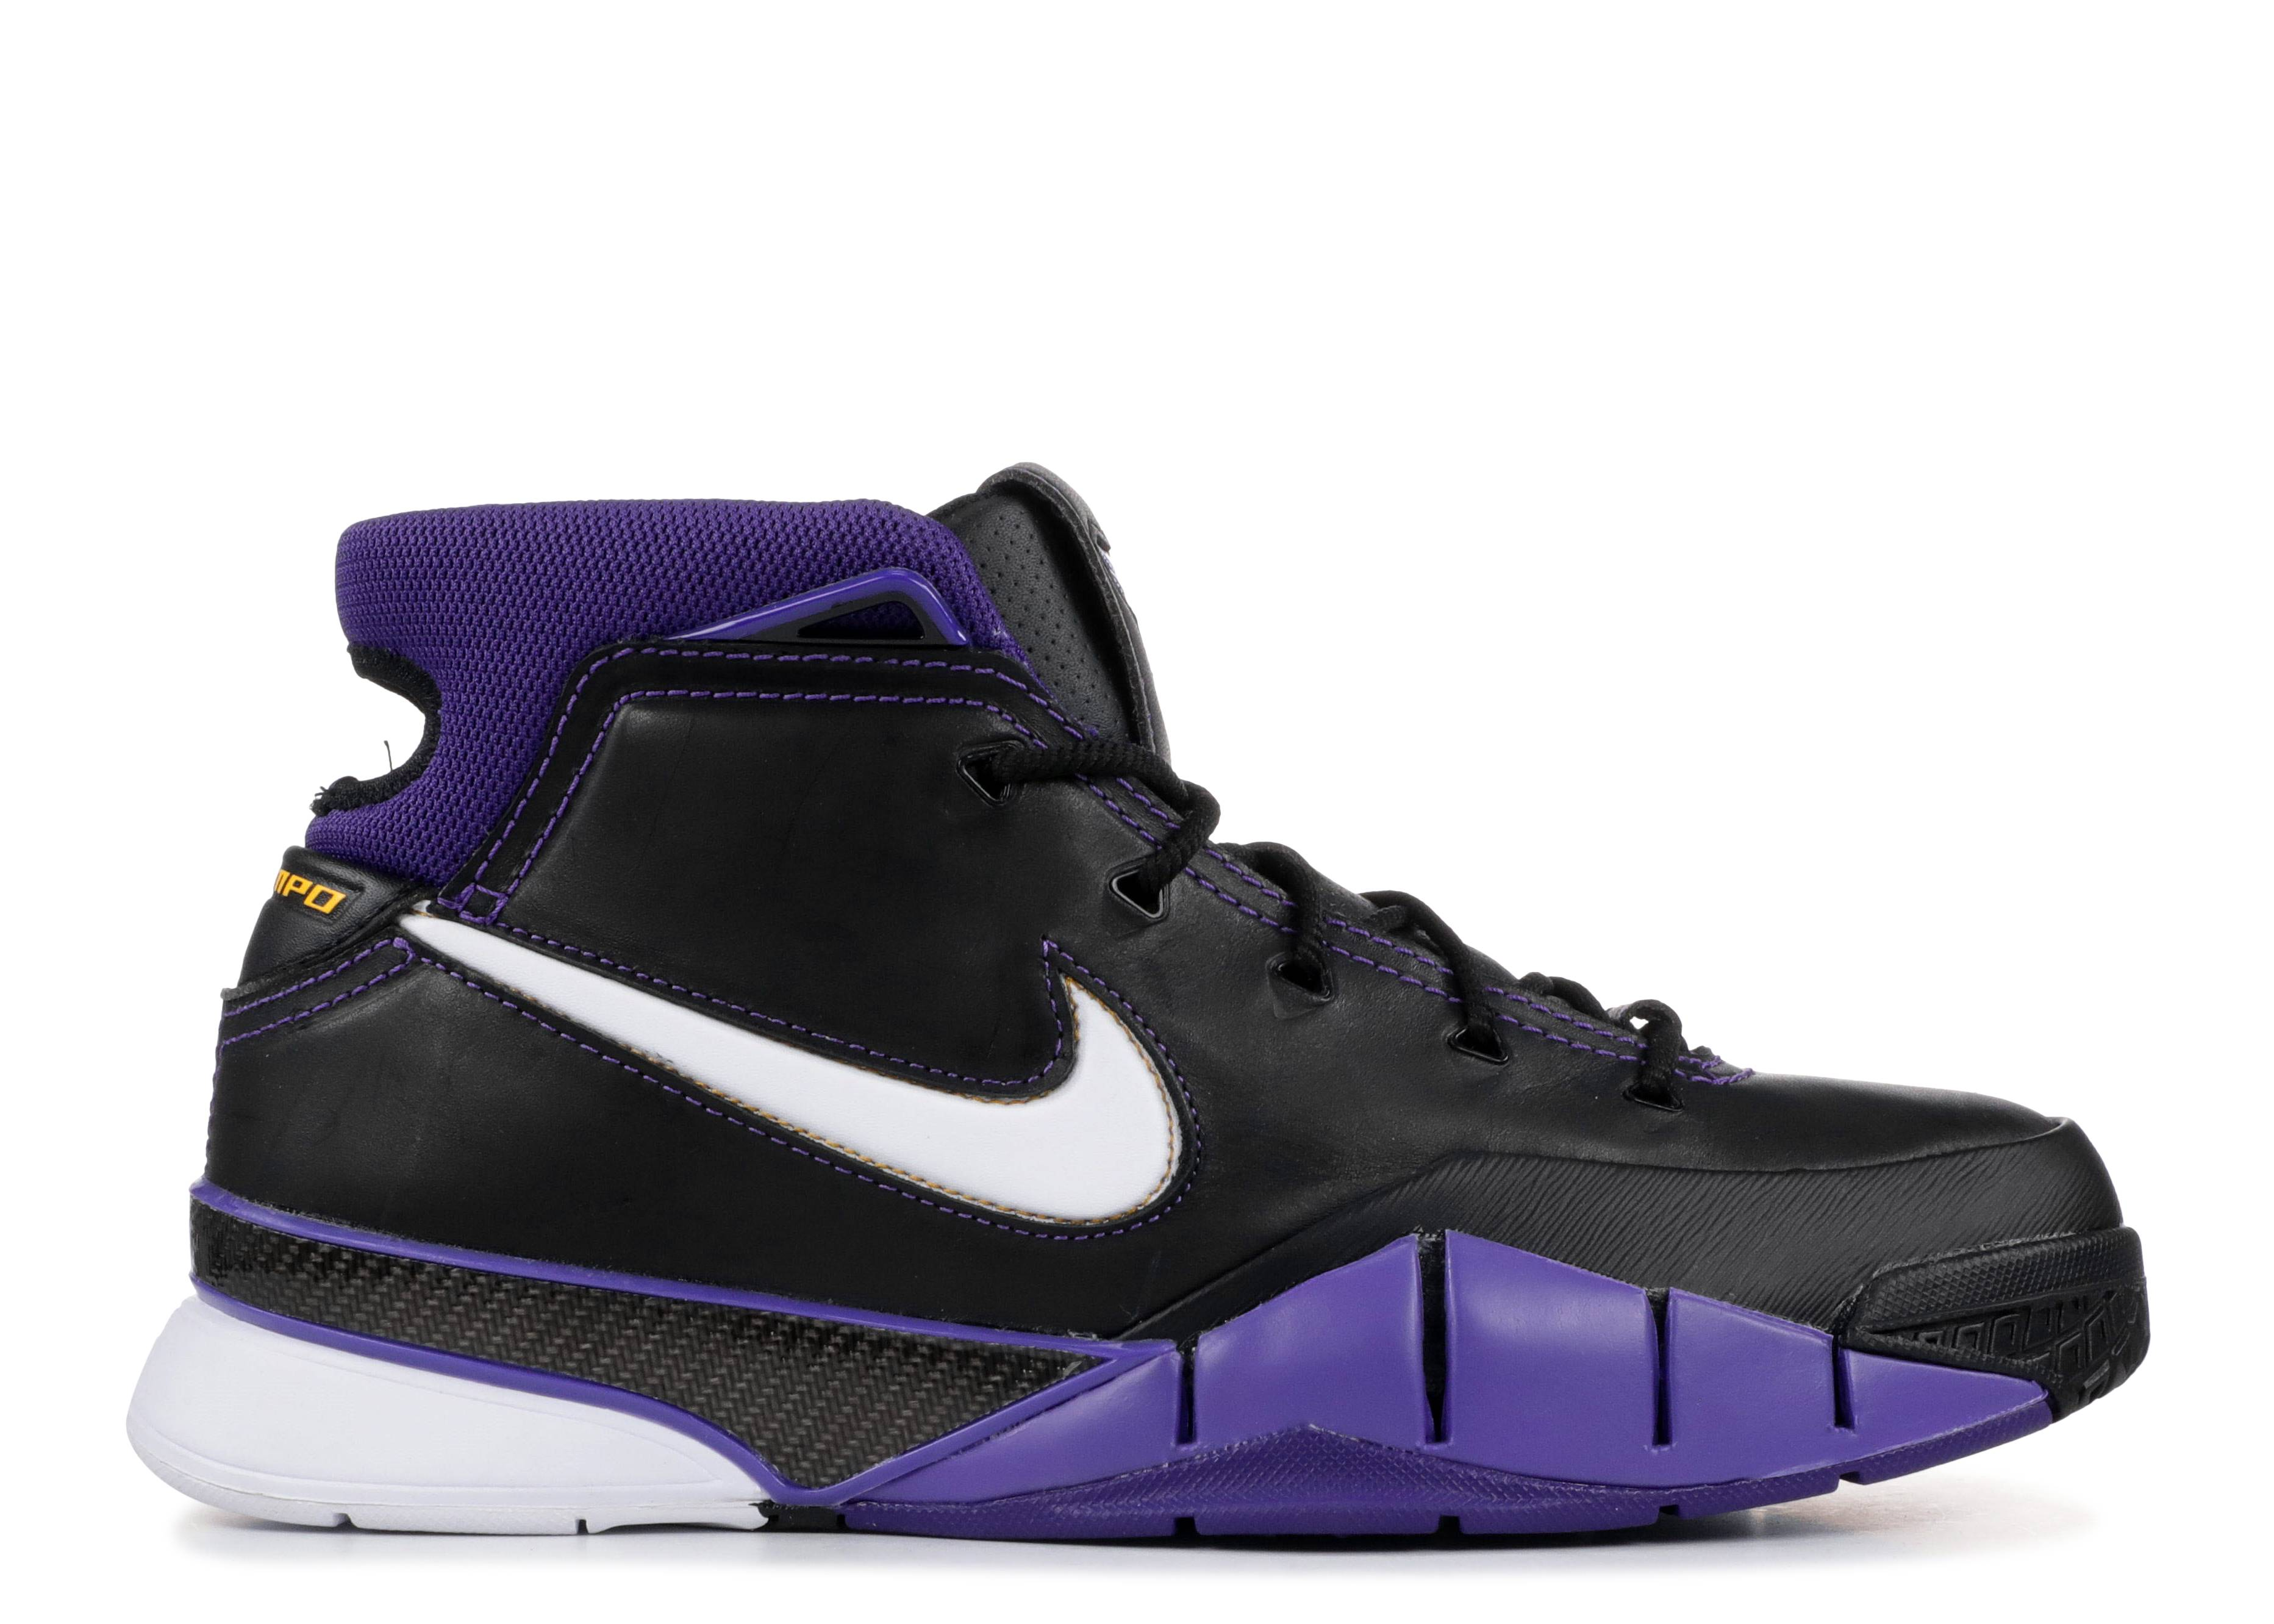 461c45a3663 Kobe Bryant - Nike Basketball - Nike | Flight Club